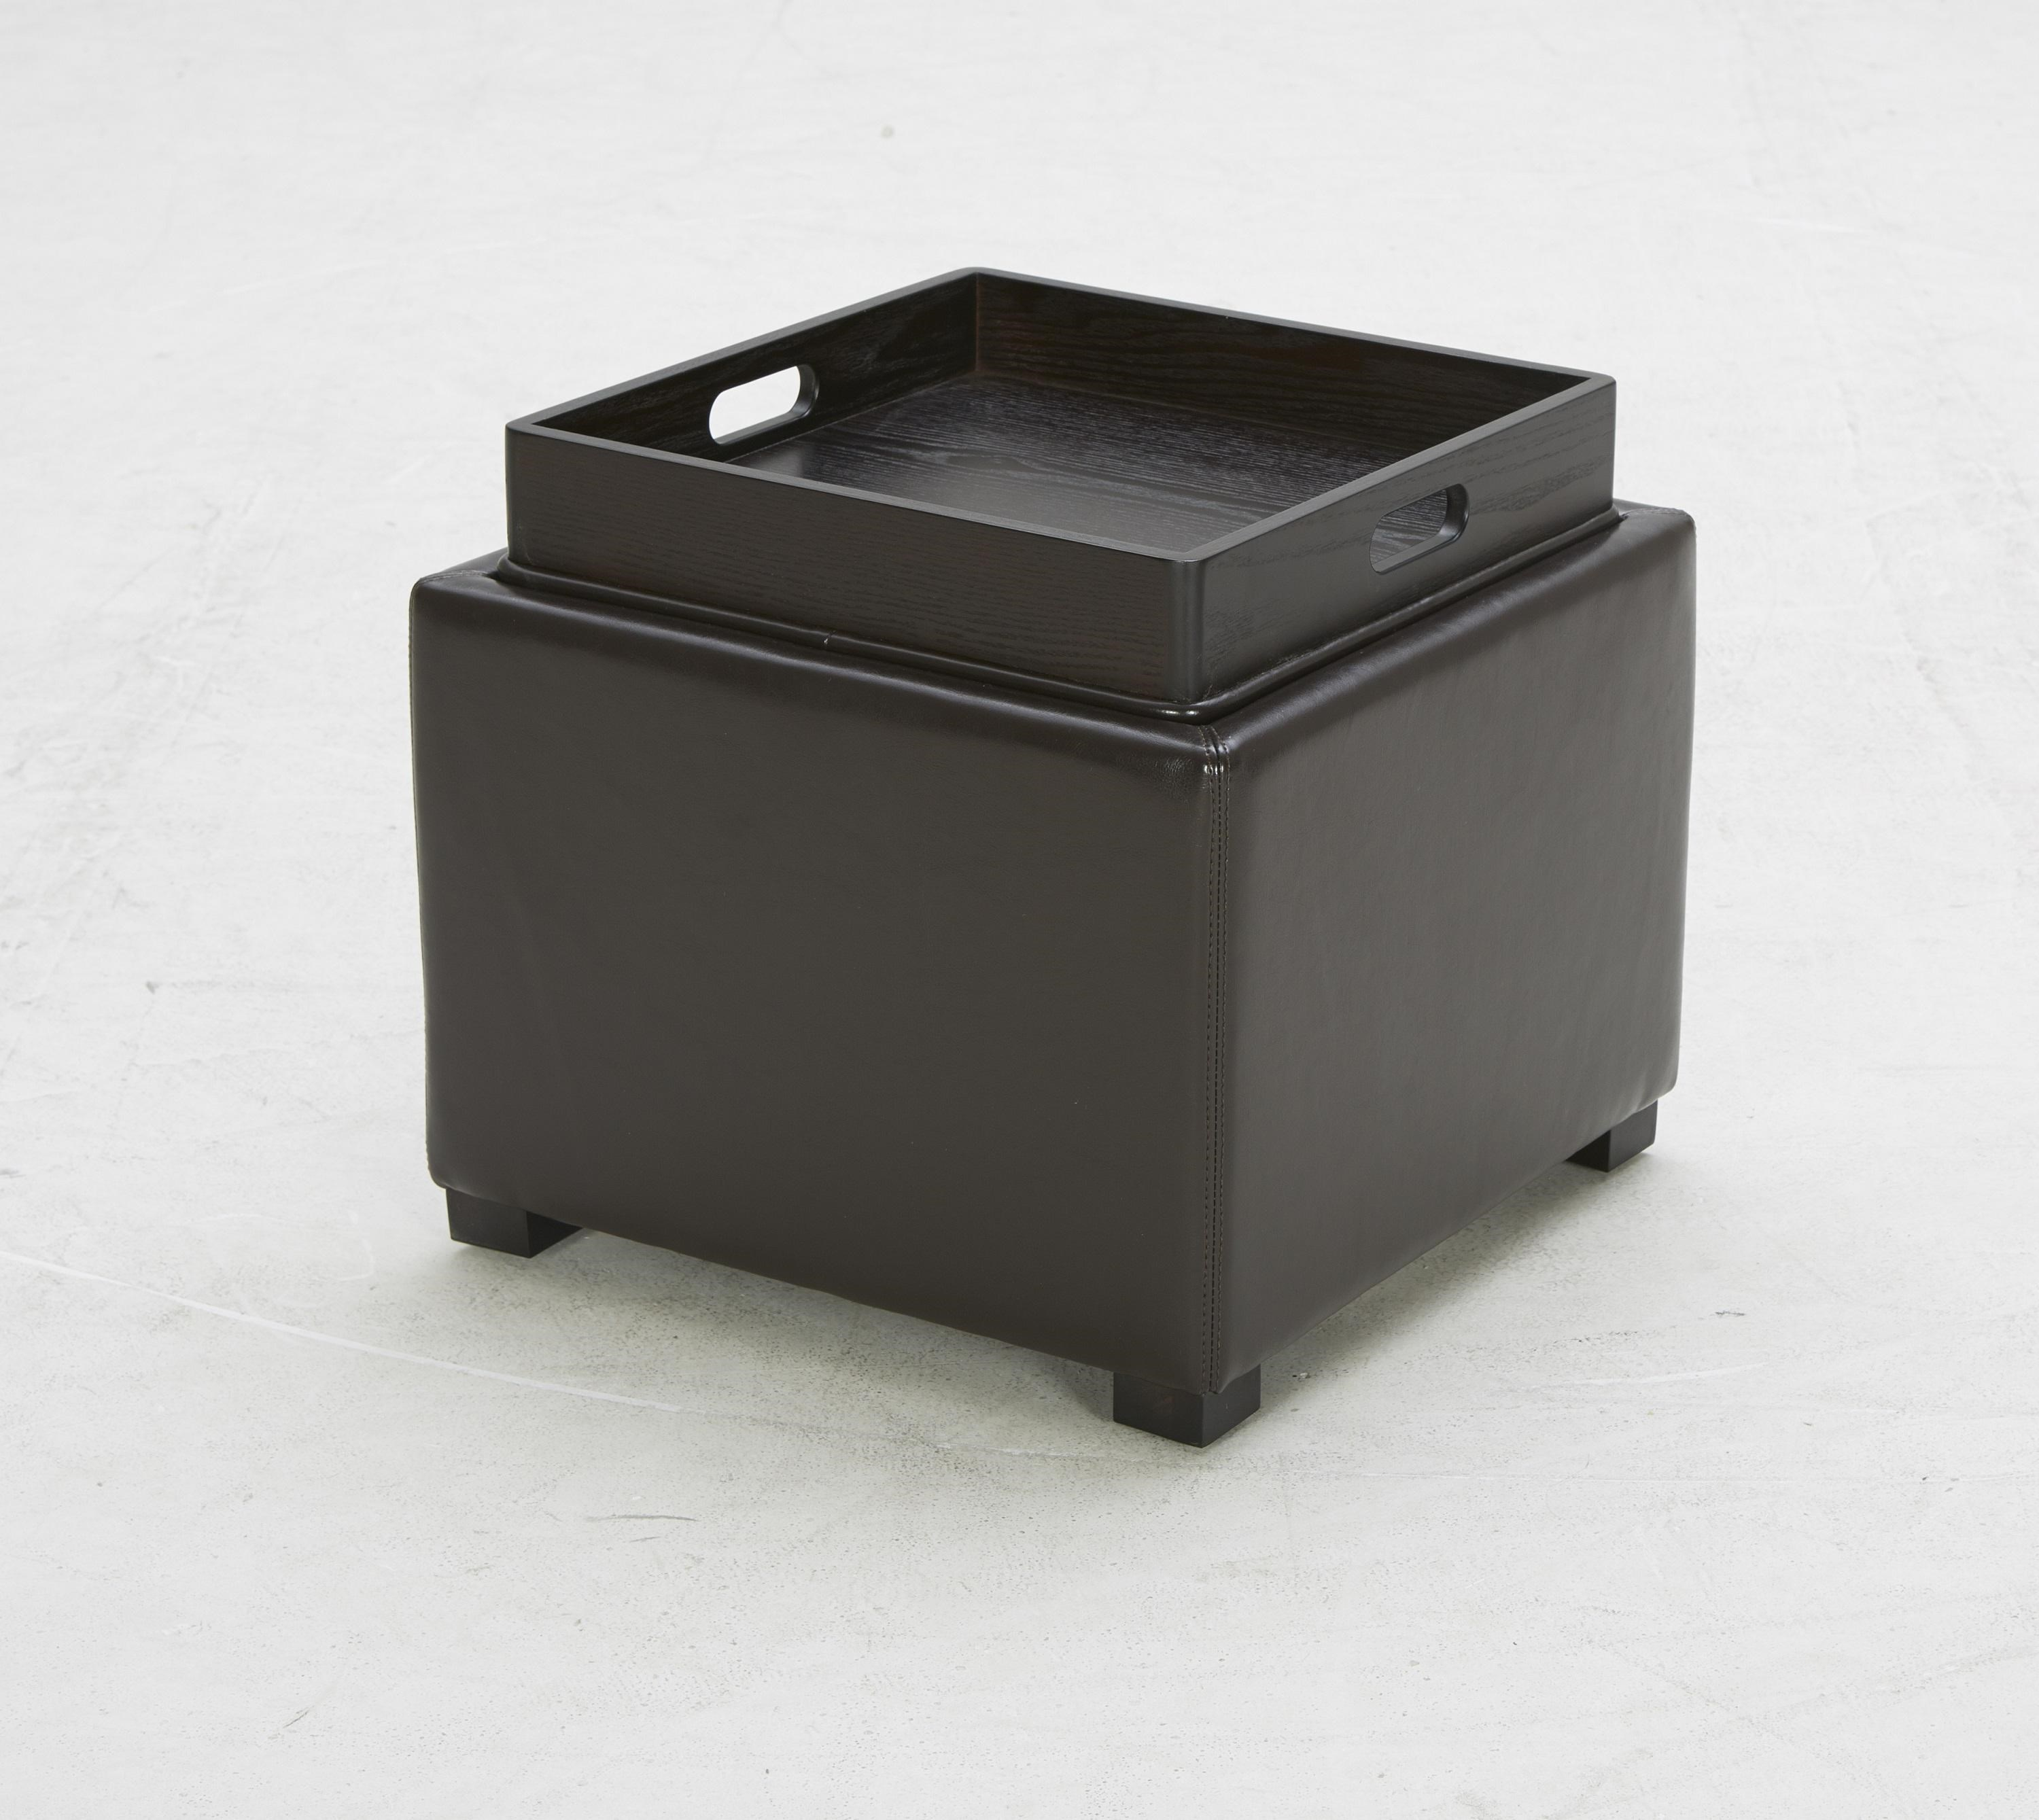 Accent Ottomans Contemporary Storage Ottoman With Built In Tray   Becker  Furniture World   Ottoman